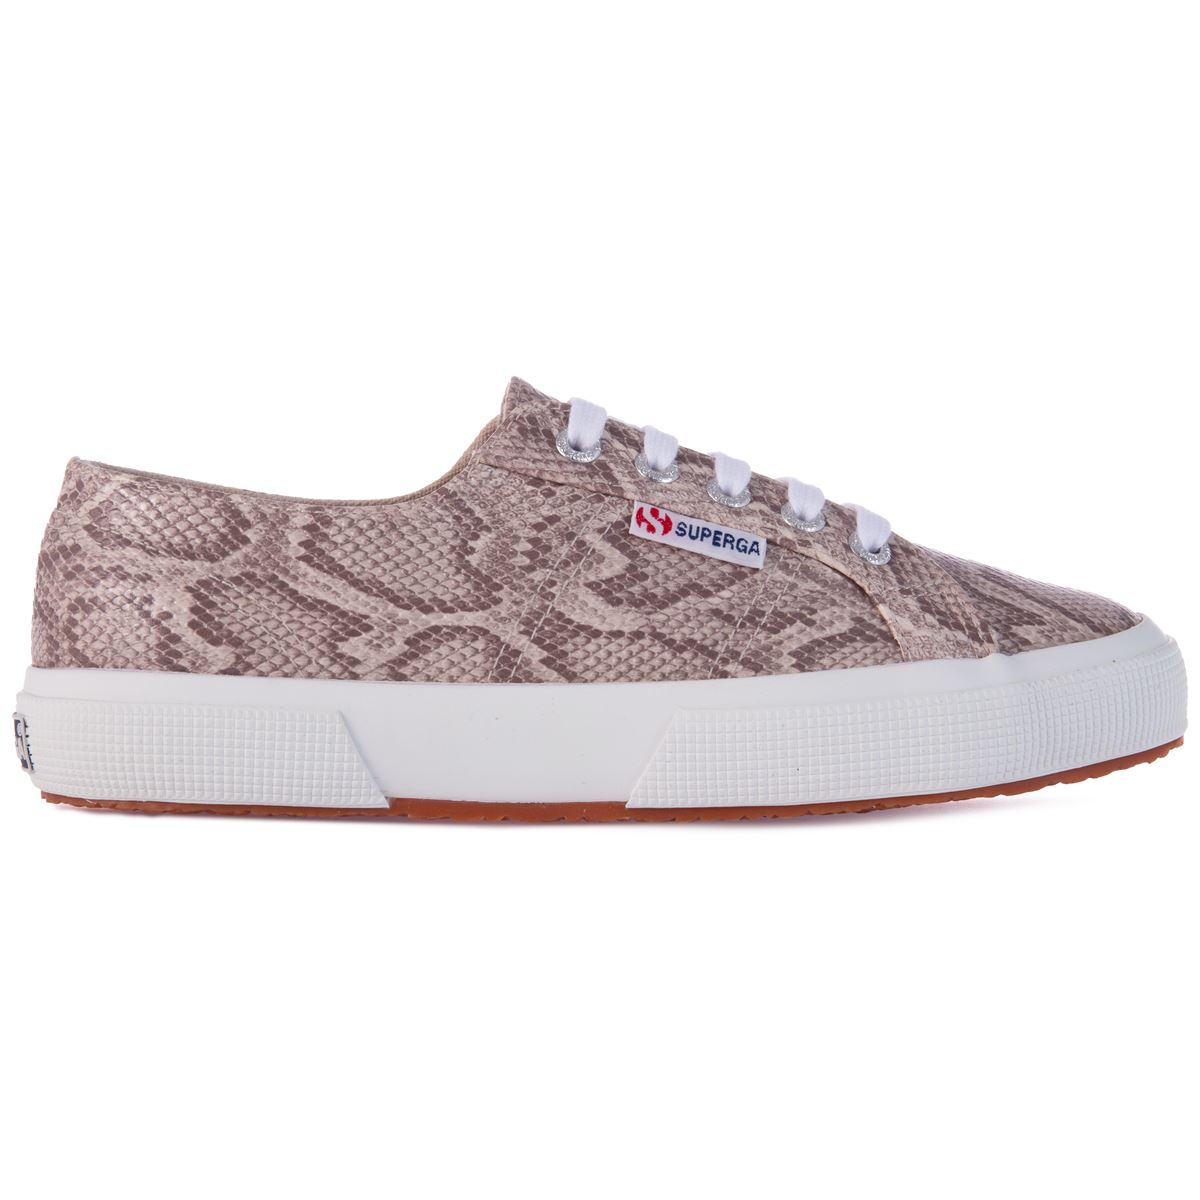 Italian Le Superga Superga for woman-S41128W